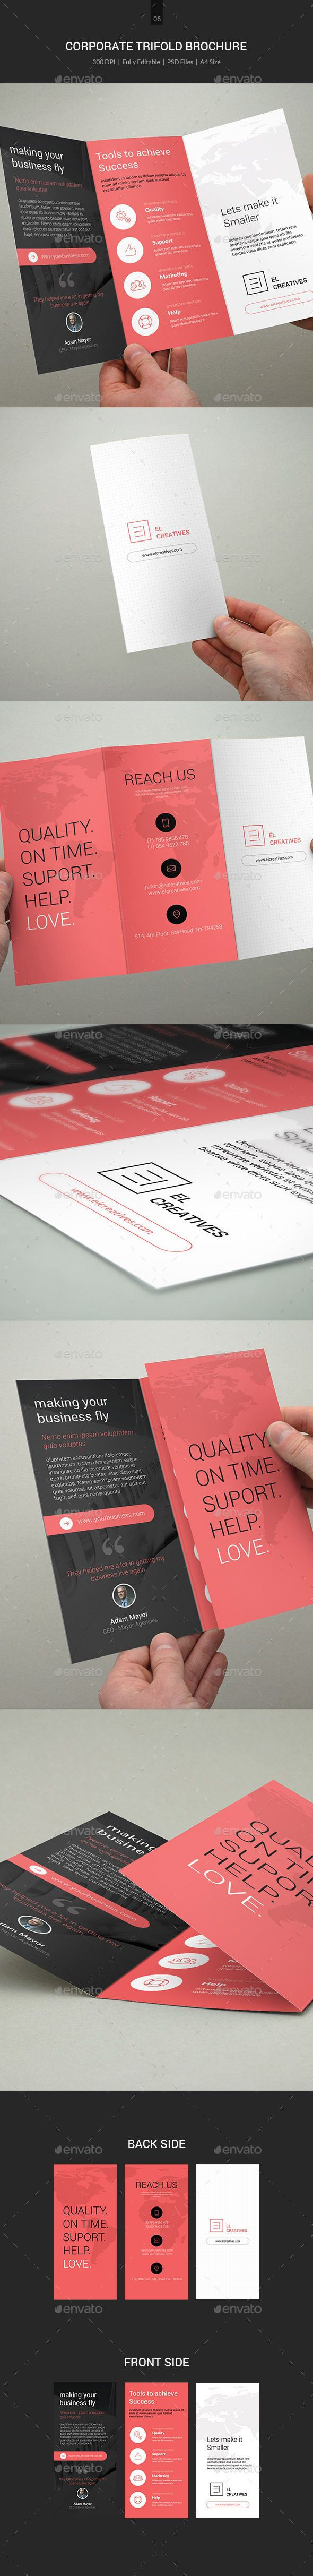 Minimal Corporate TriFold Brochure - 06 - Corporate Brochures